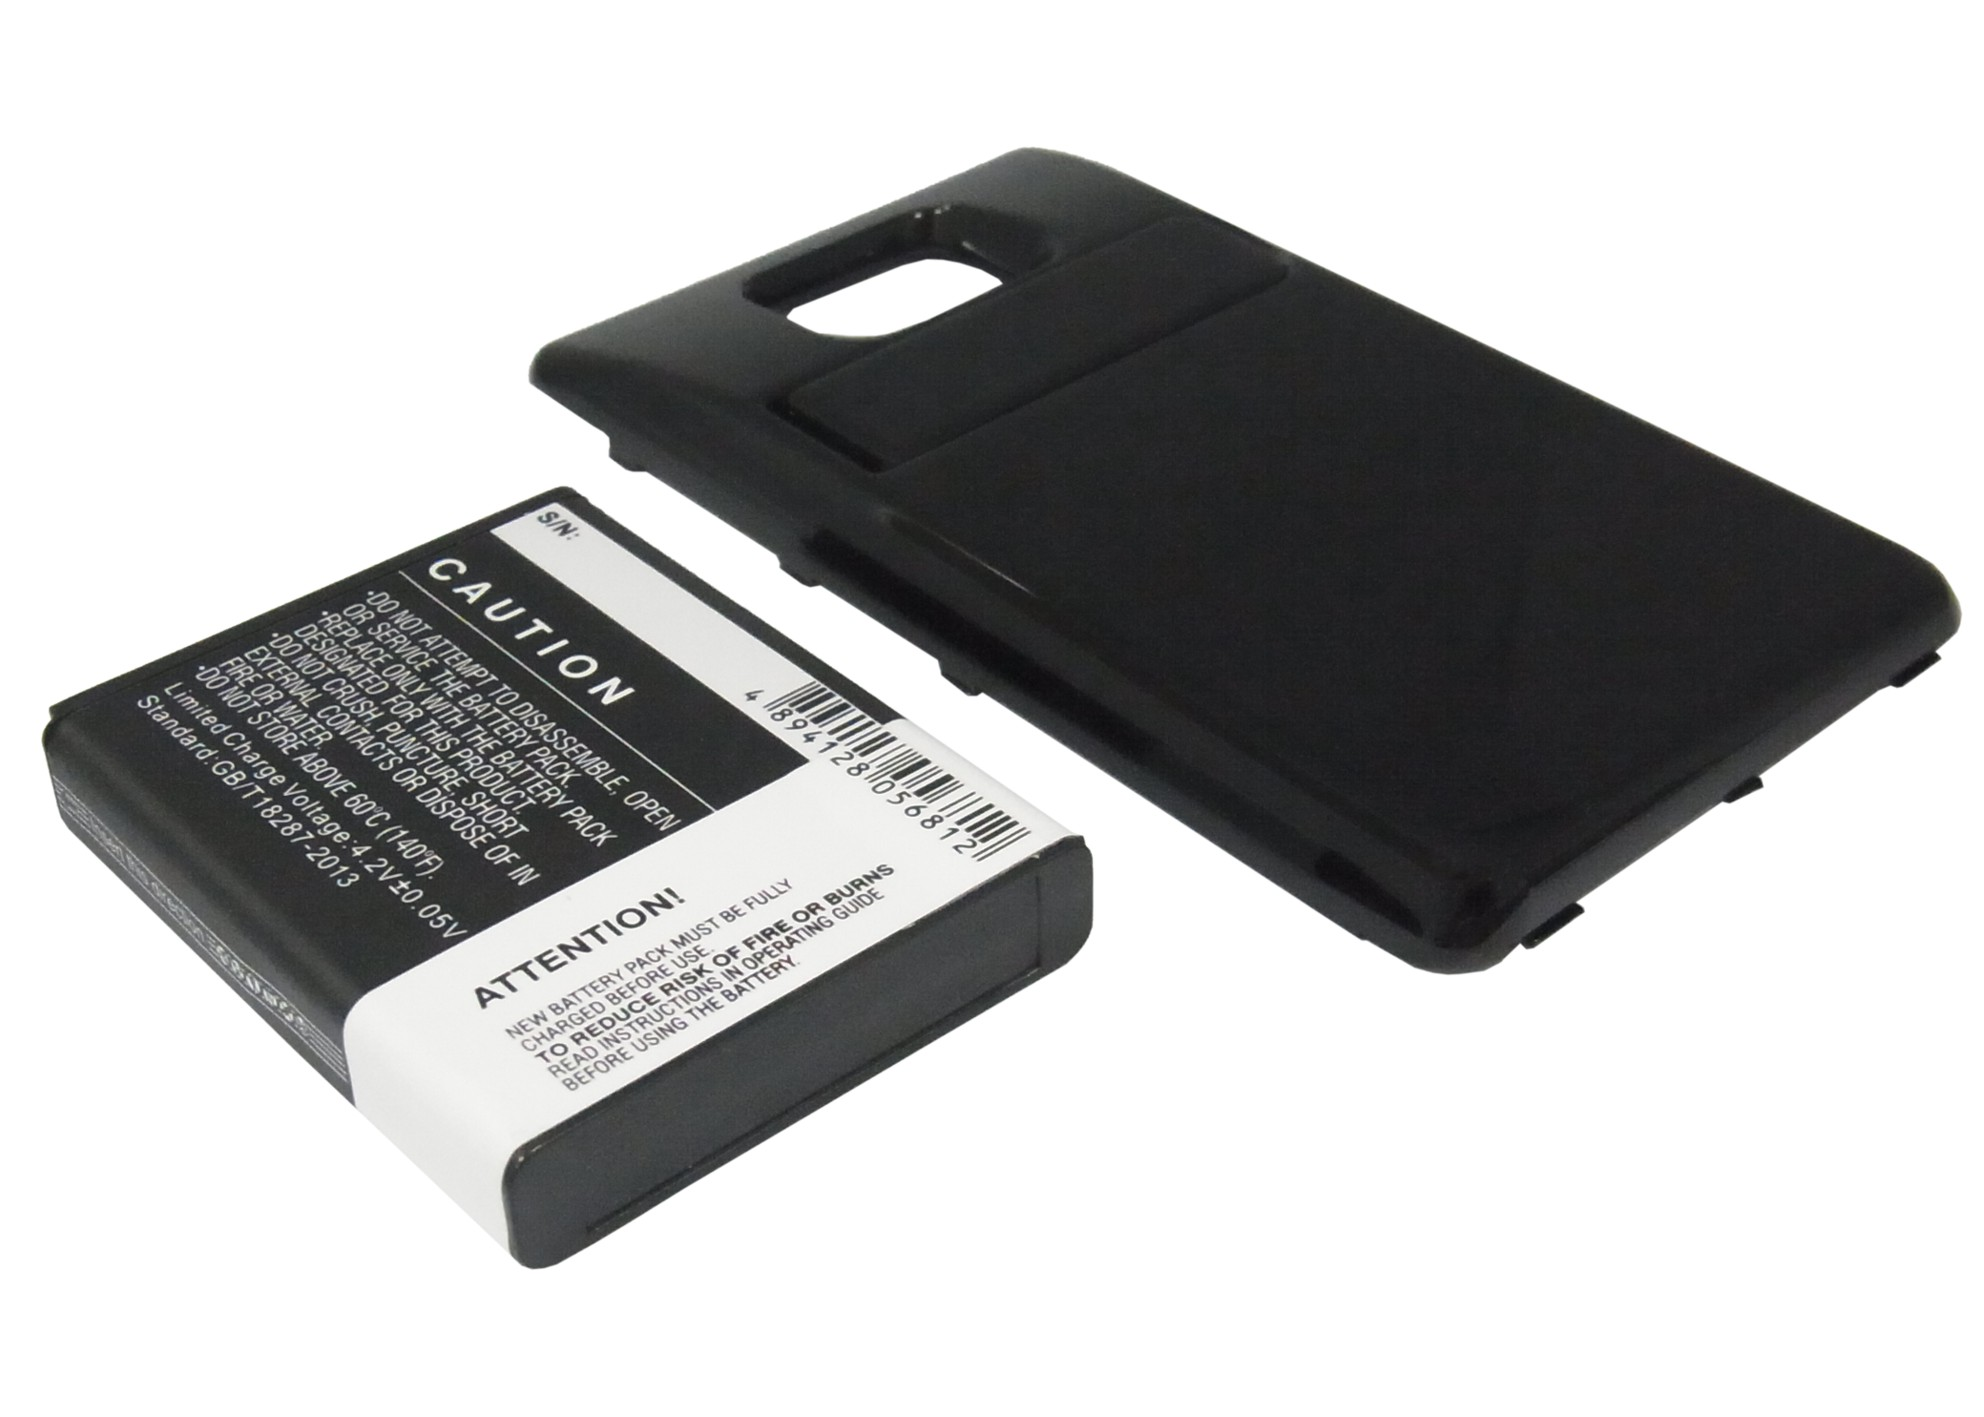 GT-i9100 extended runtime battery